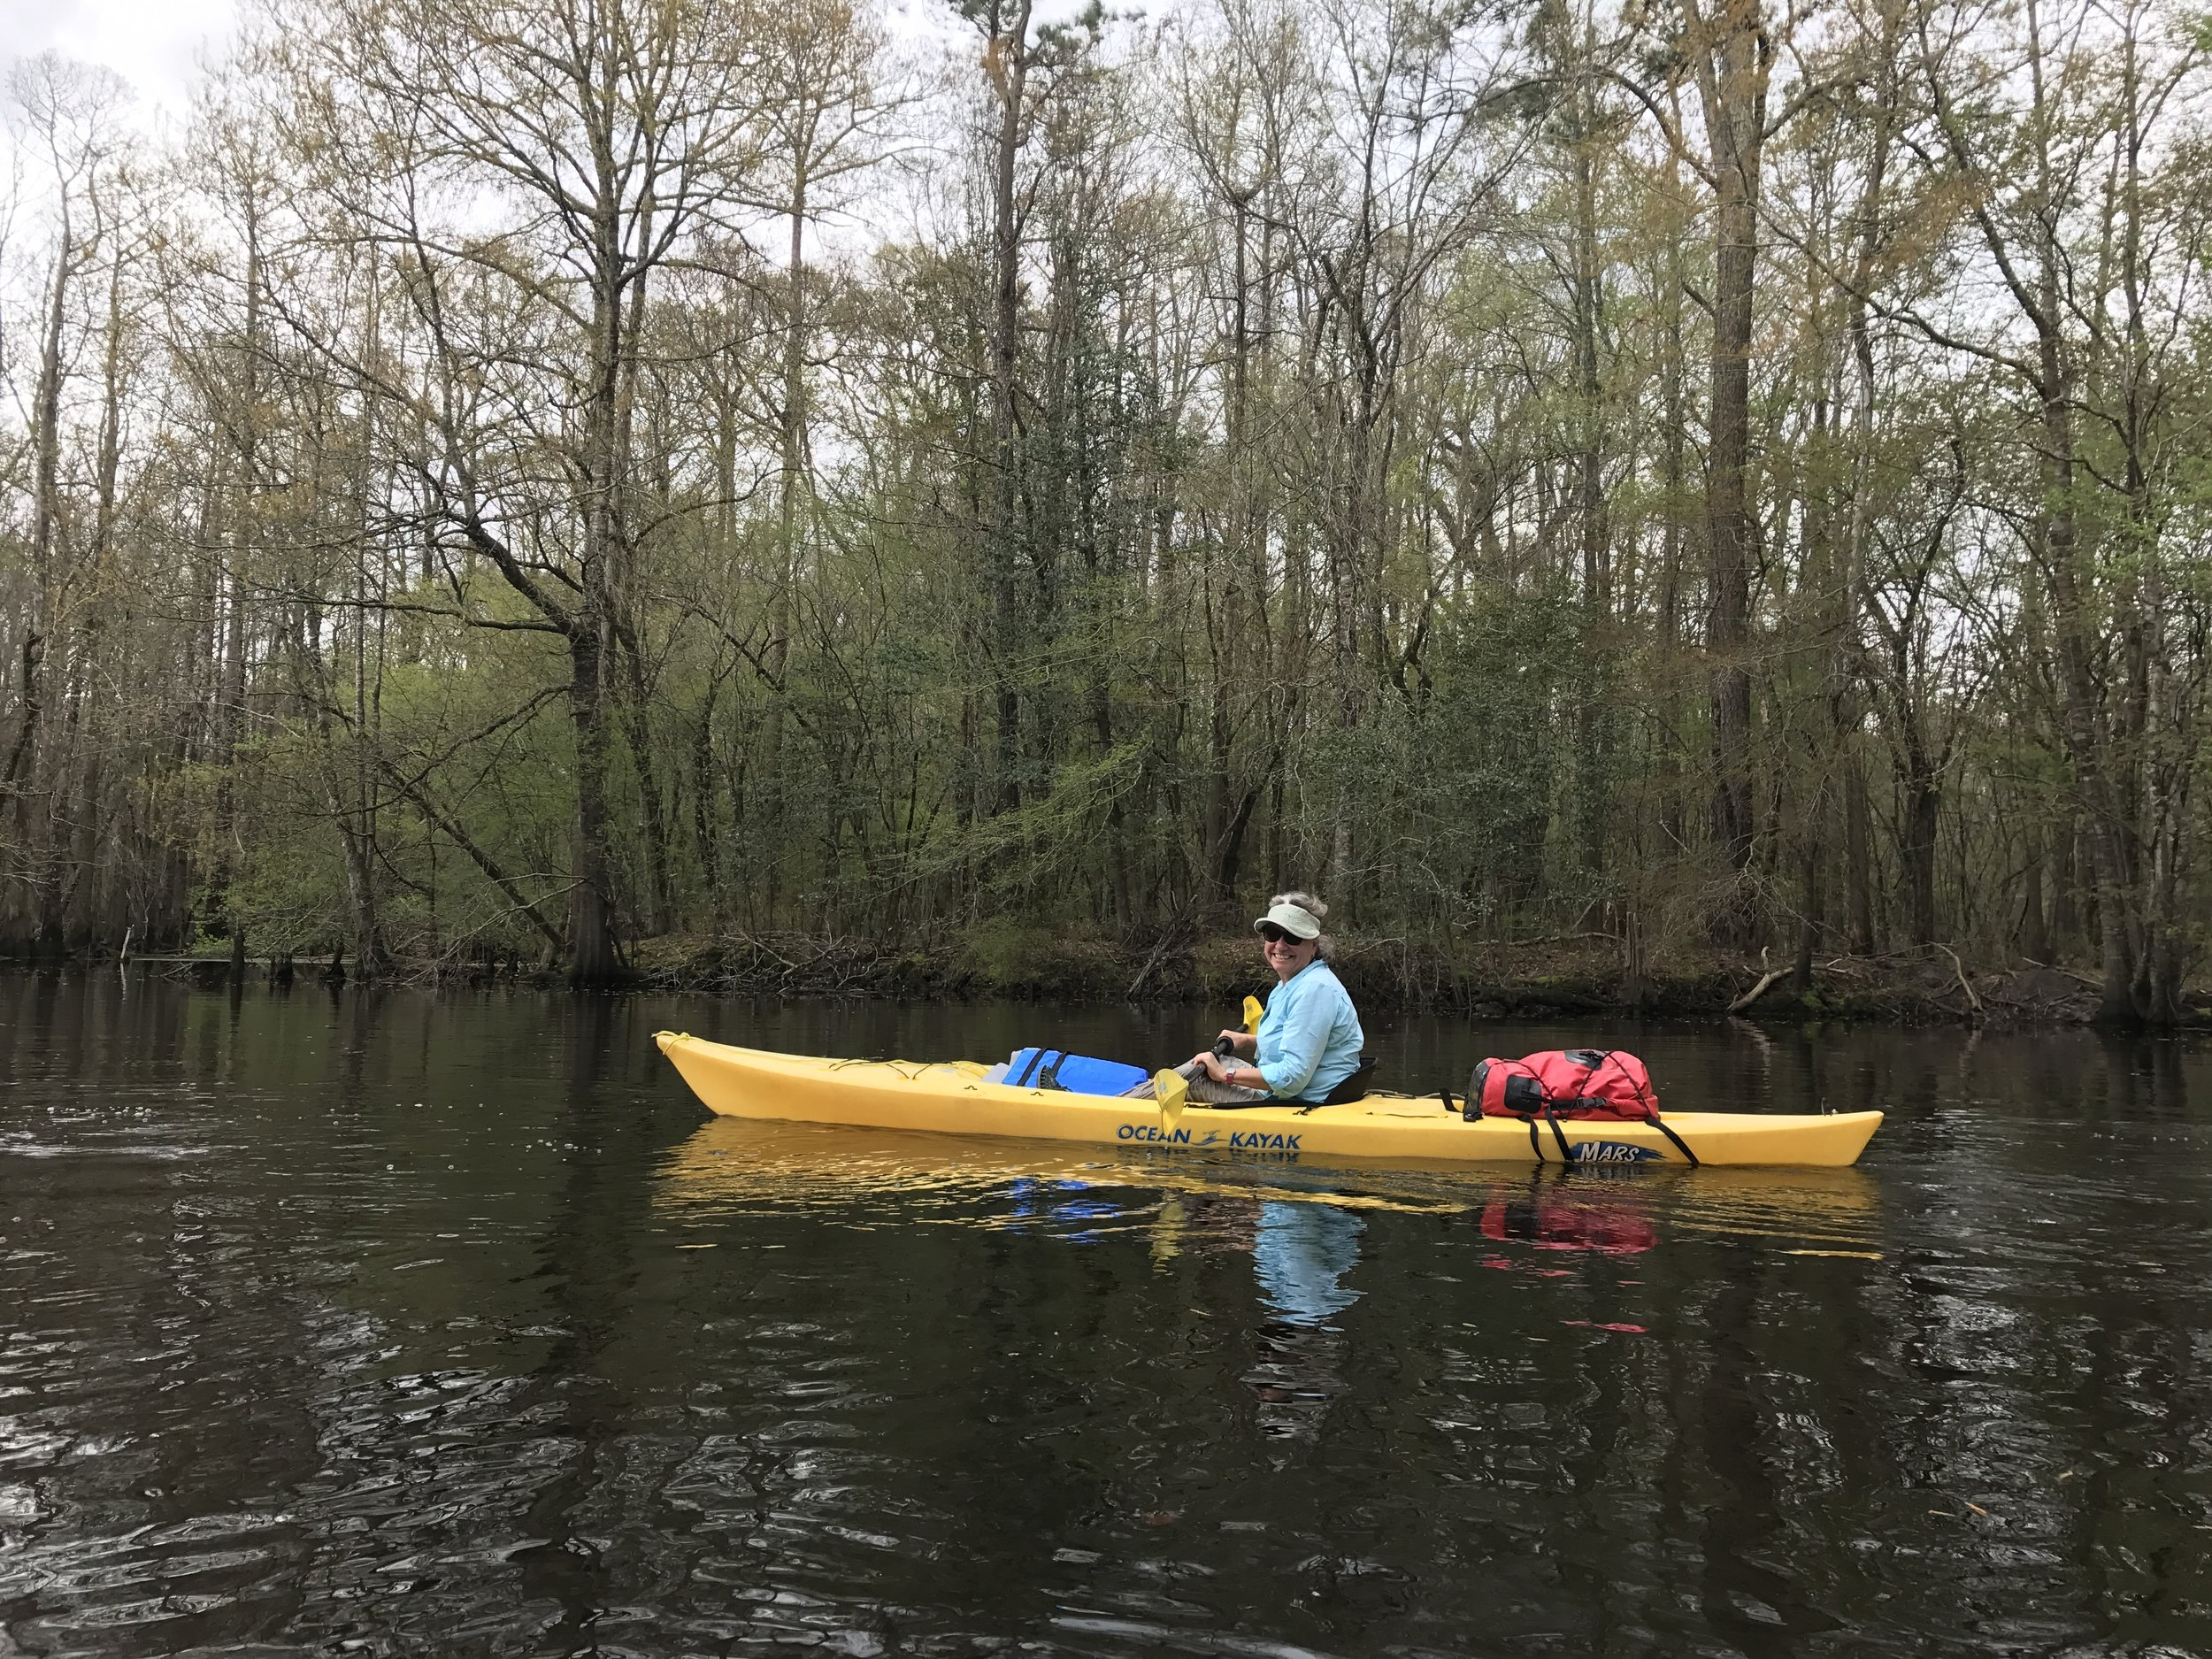 Audrey kayaking in the Three Sisters Swamp exploring the oldest Cypress trees in the world!